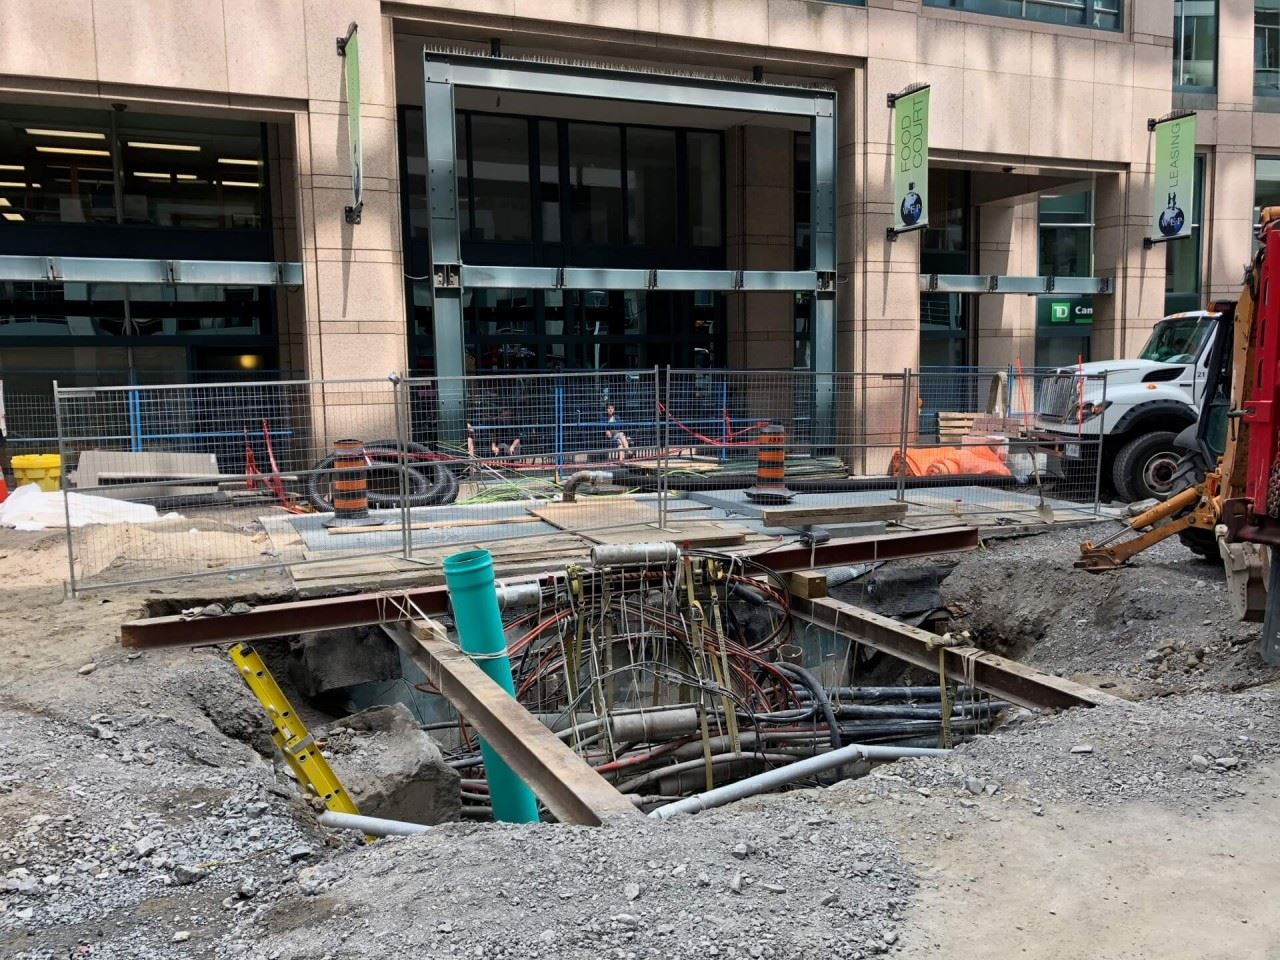 Open work hole on Queen Street, showing exposed wires, conduits and connections.